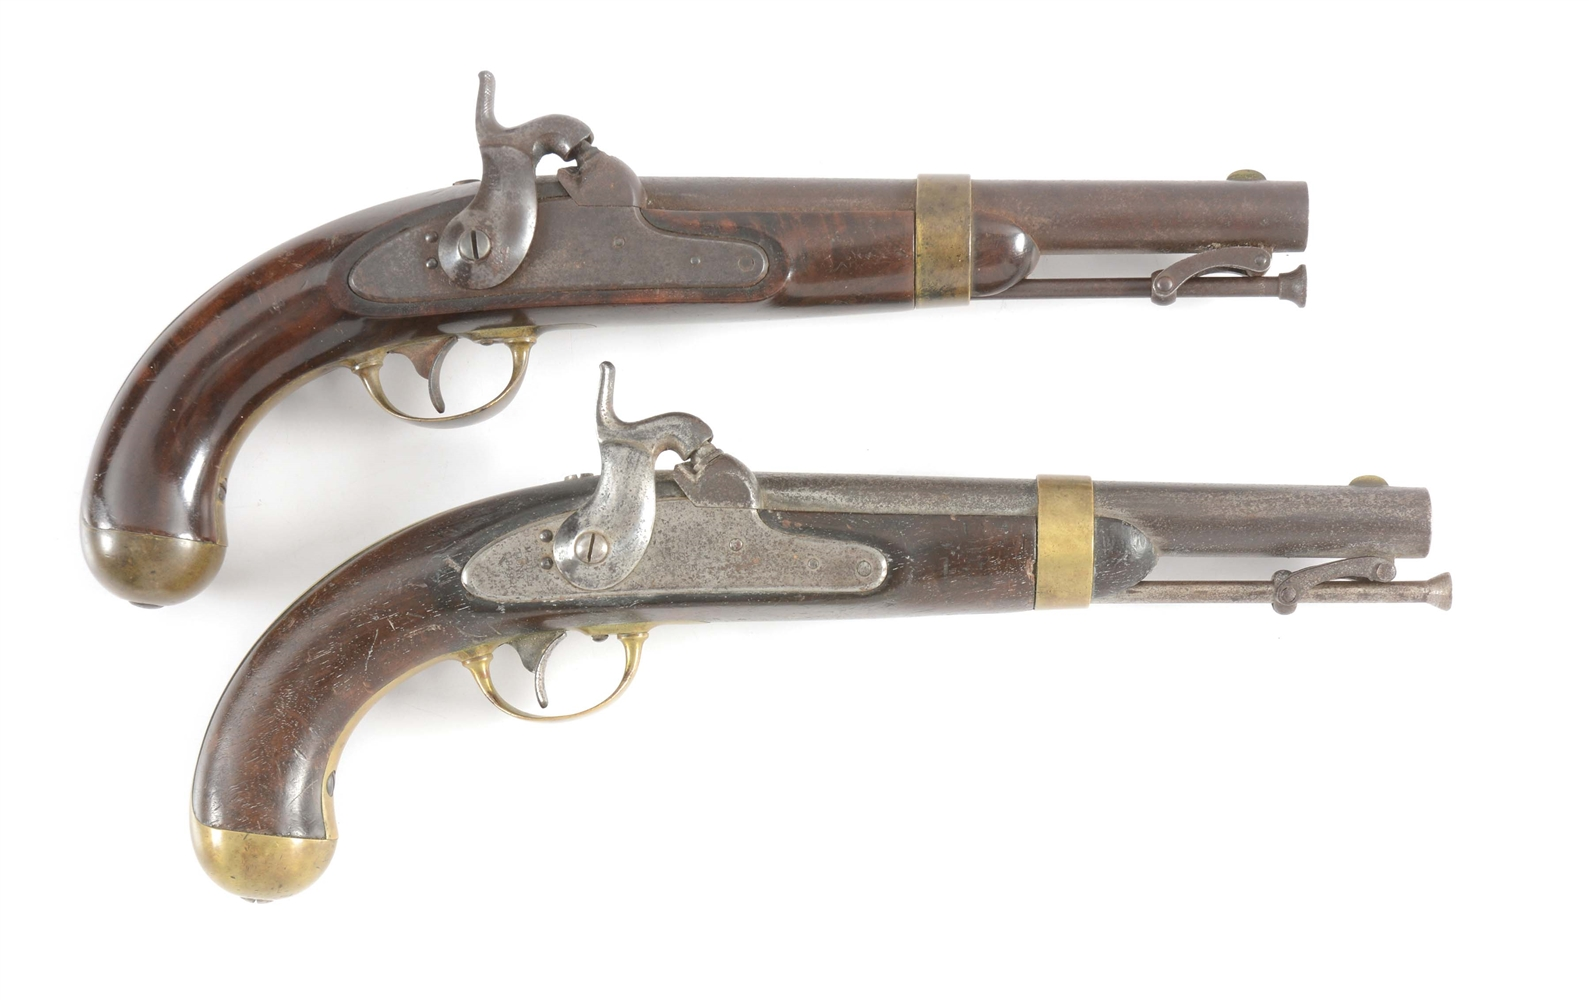 (A) LOT OF TWO H. ASTON MODEL 1842 PERCUSSION PISTOLS, DATED 1851 & 1849.